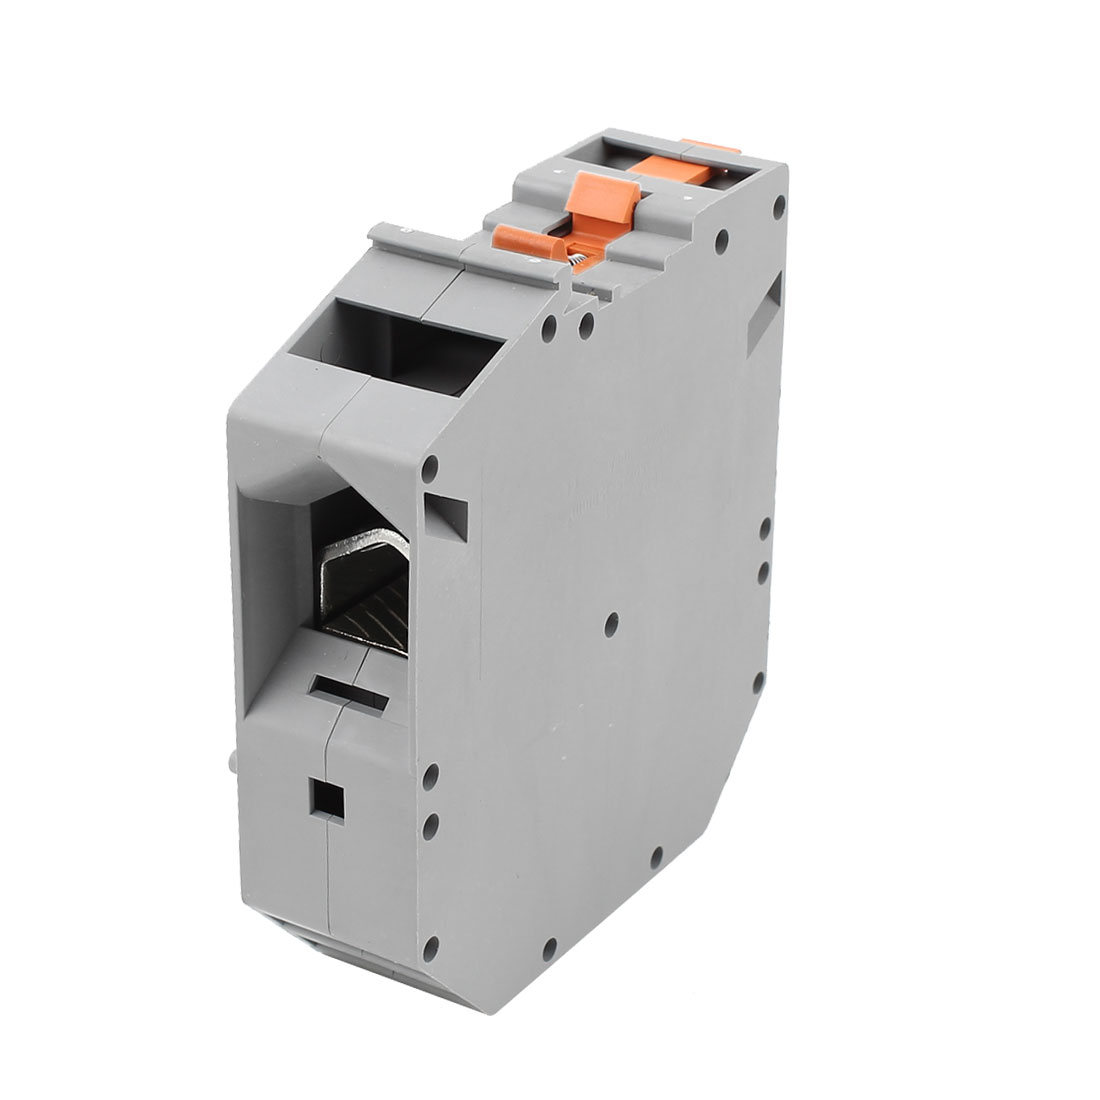 UKH150 Rail Mount 50-150mm2 Wire Screwless Terminal Block Gray 1000V 309A